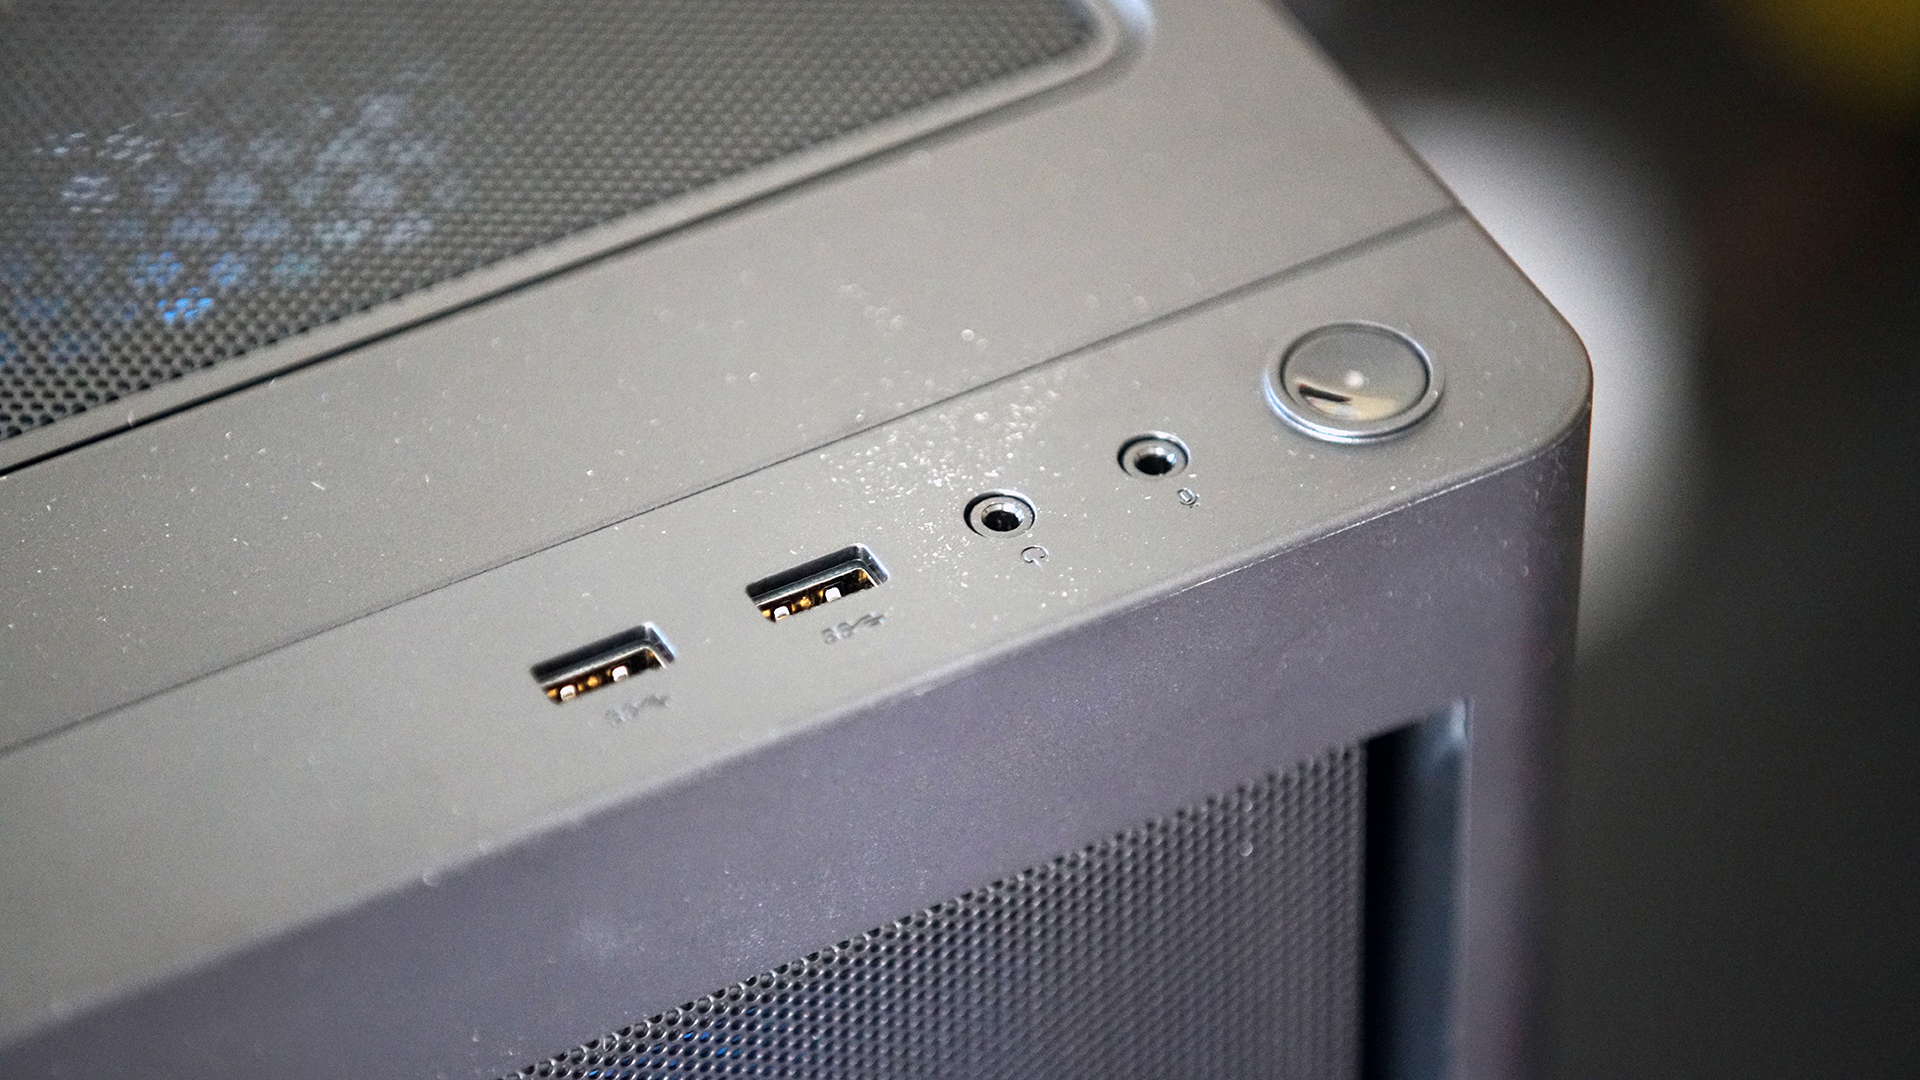 Lenovo Legion 5i top and front of case, showing front ports and power button